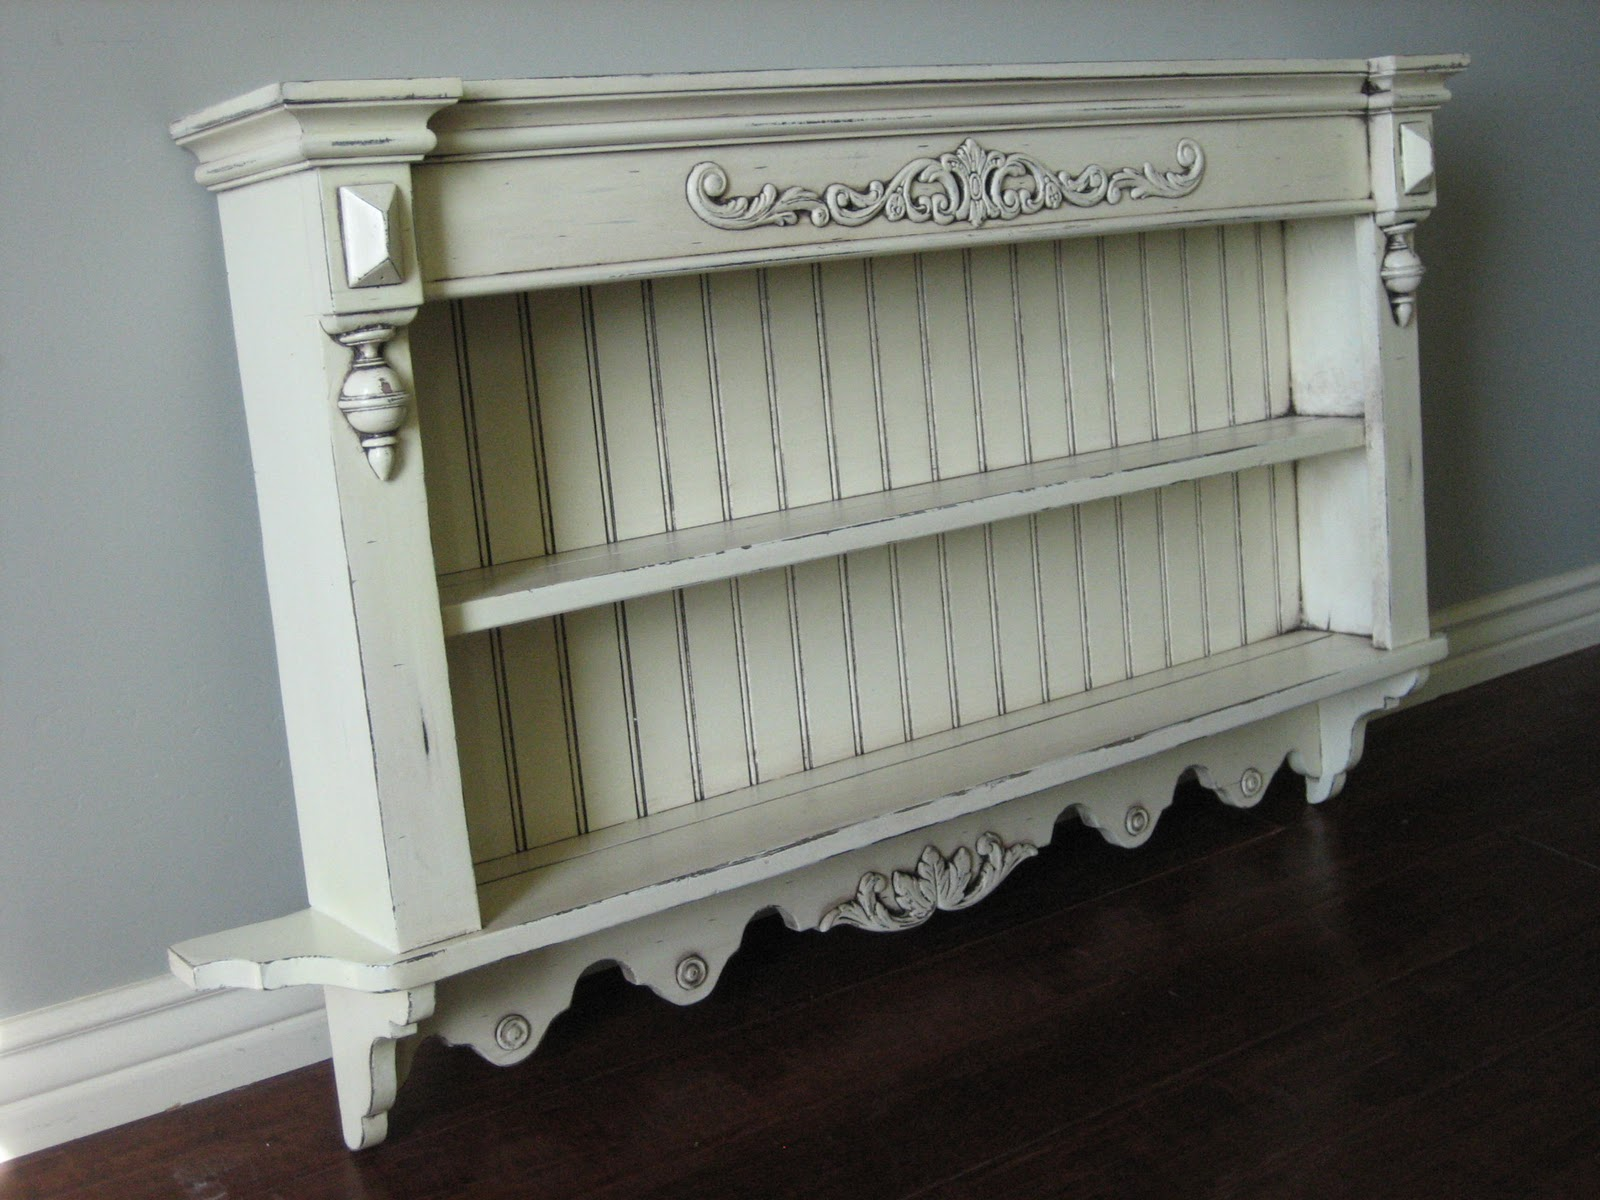 European paint finishes shabby french wall shelves top shelf is 45 deepttom shelf is 55 deep amipublicfo Image collections